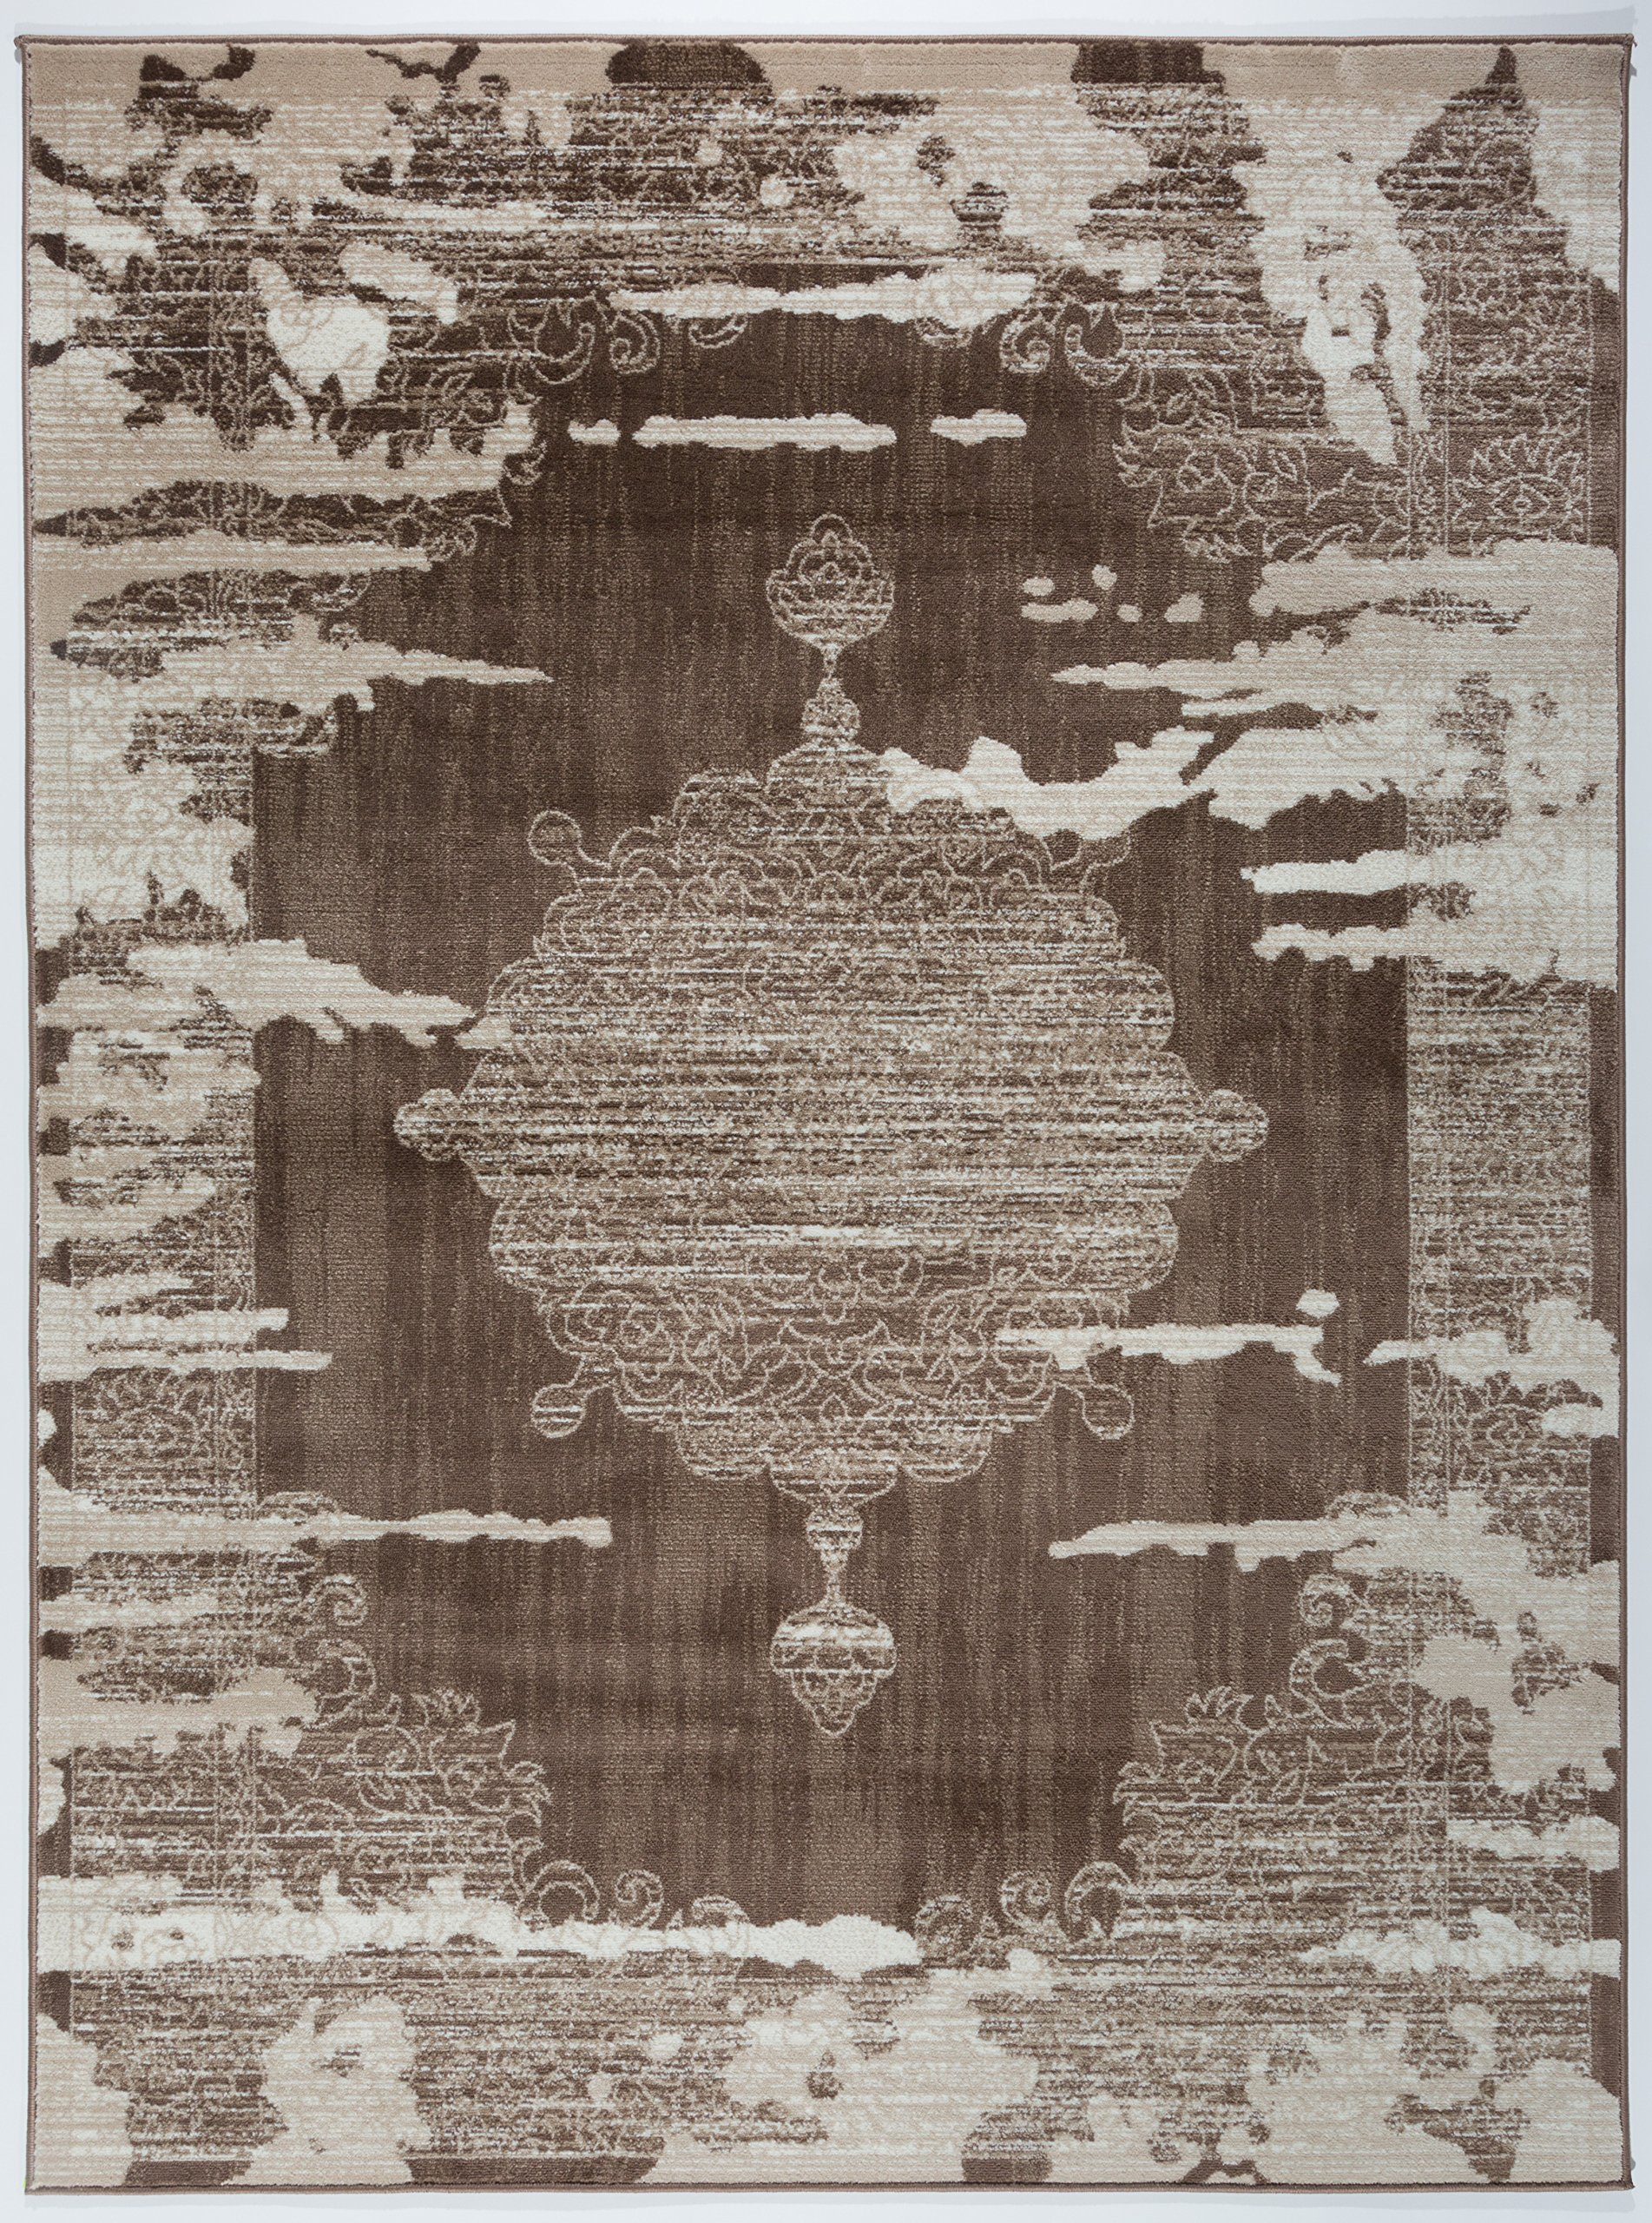 Antep Rugs Zeugma Collection Vintage Area Rug 288-Brown Beige 7'10 X 10'